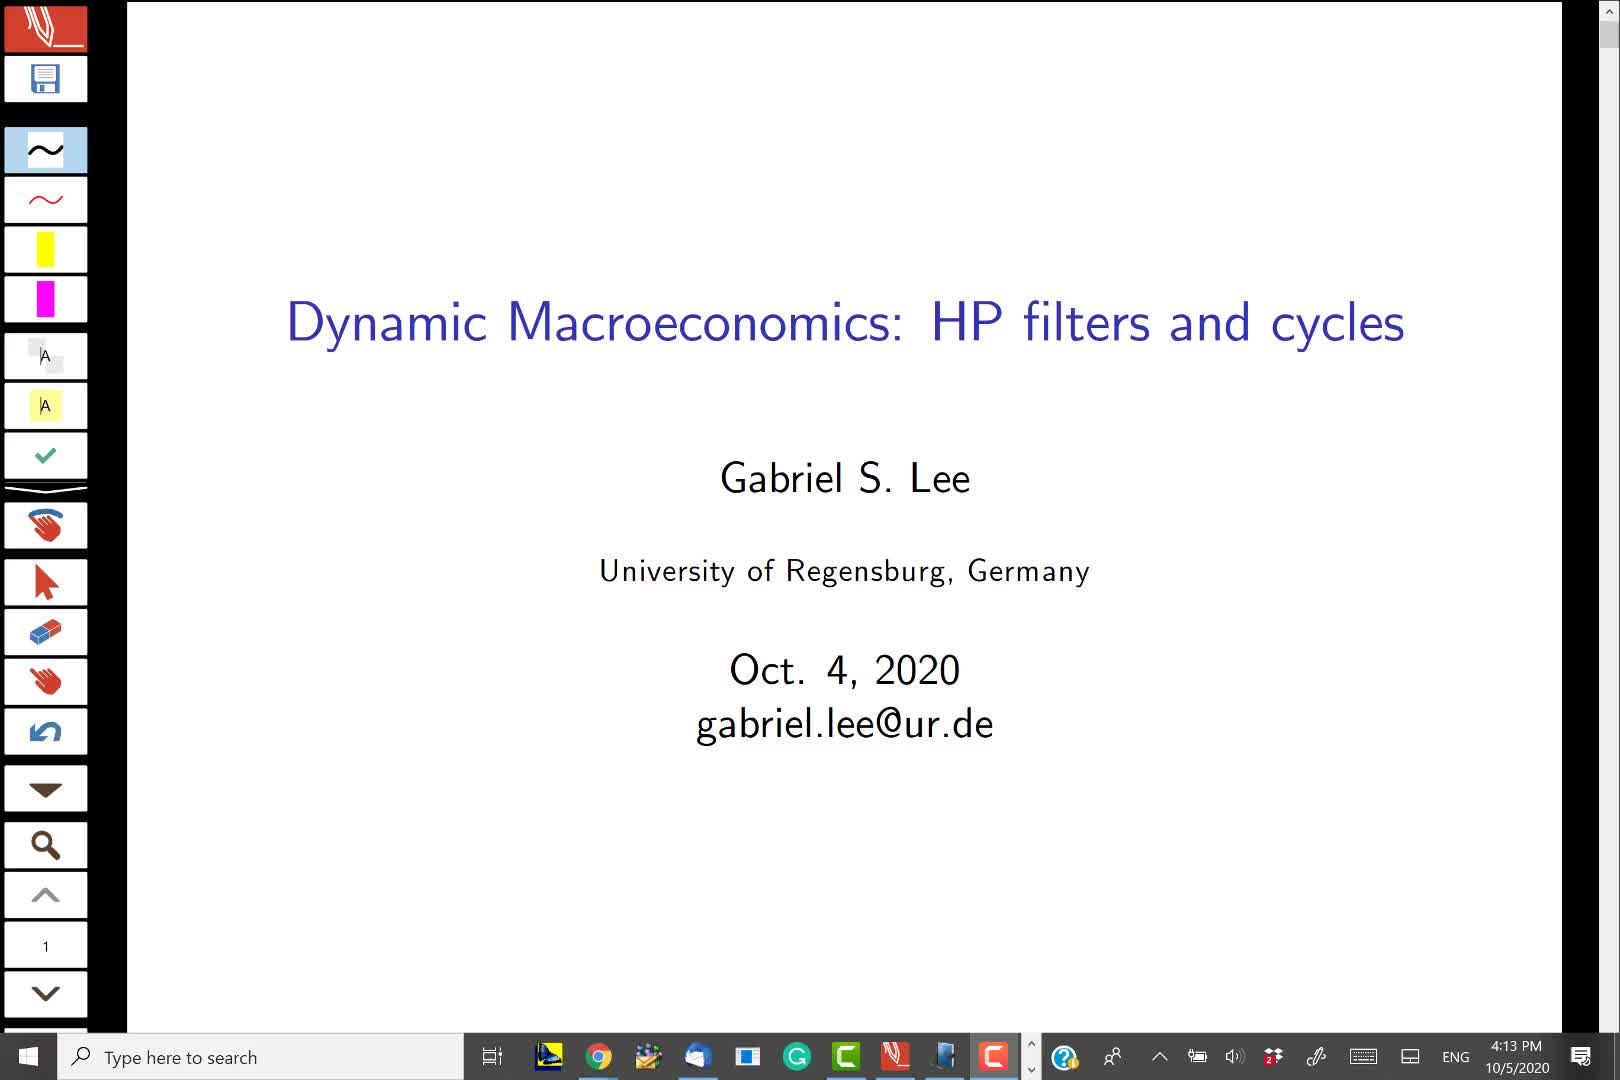 Business Cycles and HP filter